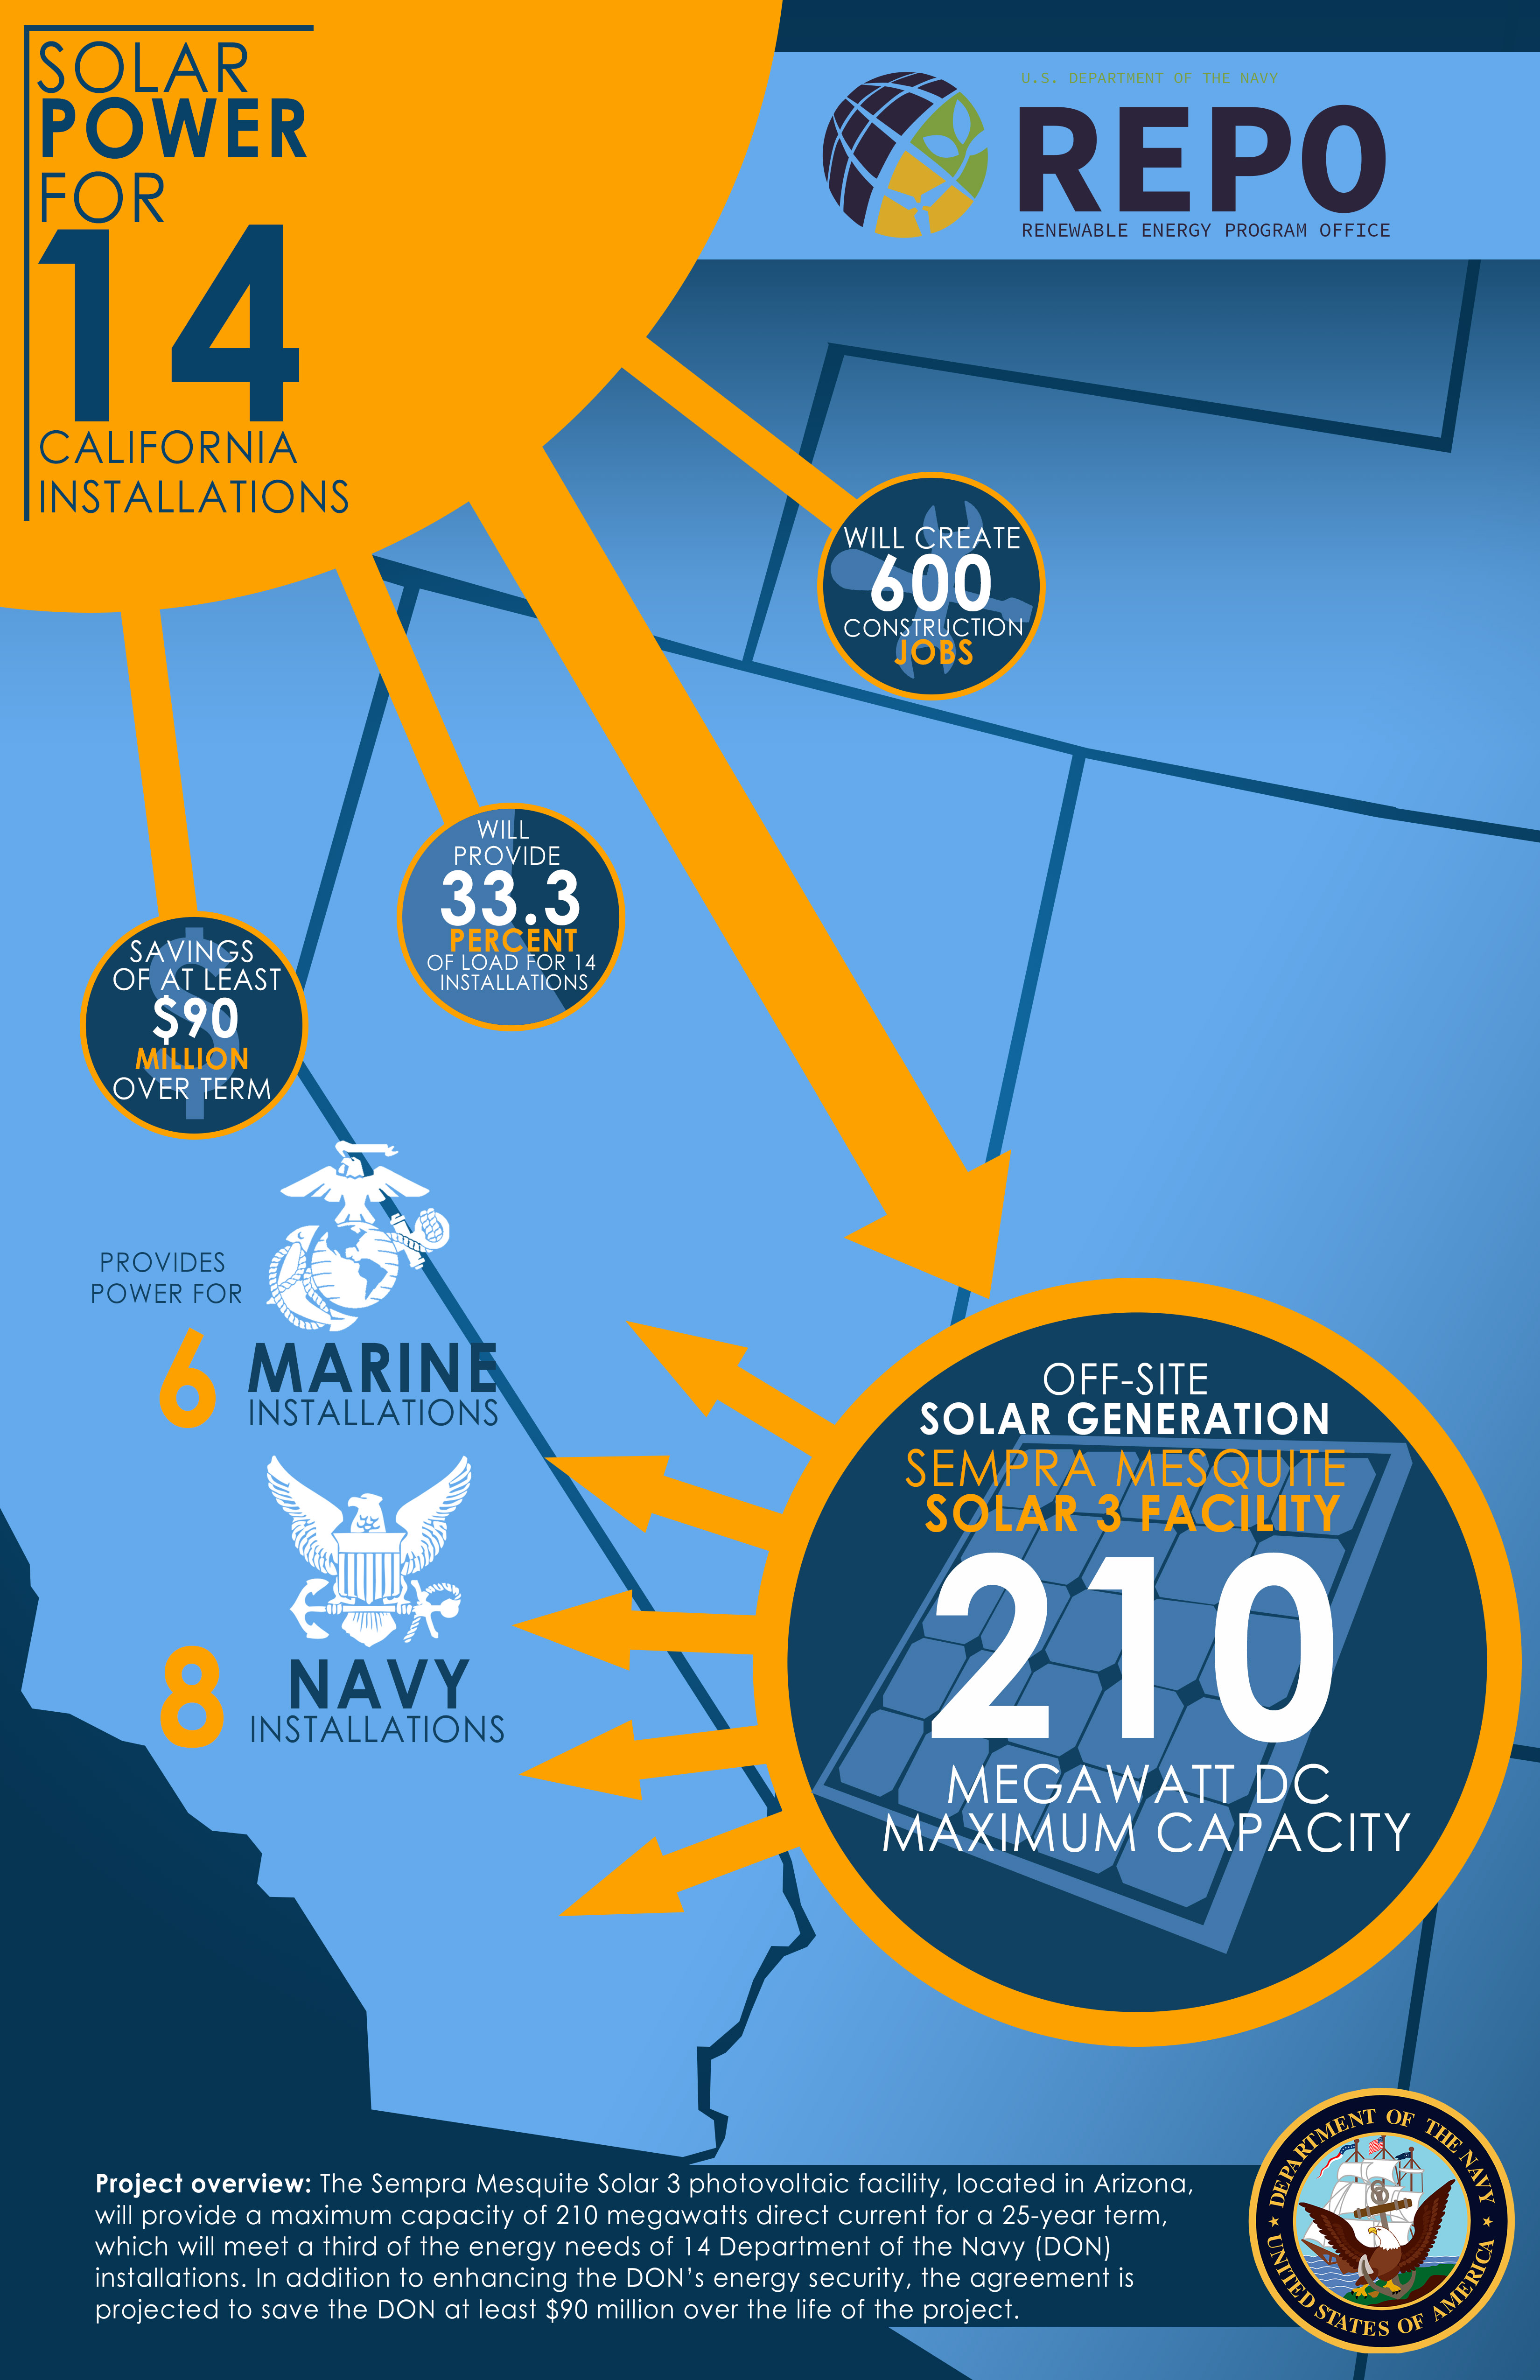 Marine solar panel installations first mate marine inc - A 2015 Infographic Depicting How The Sempra Mesquite Solar 3 Photovoltaic Facility Will Provide Maximum Capacity